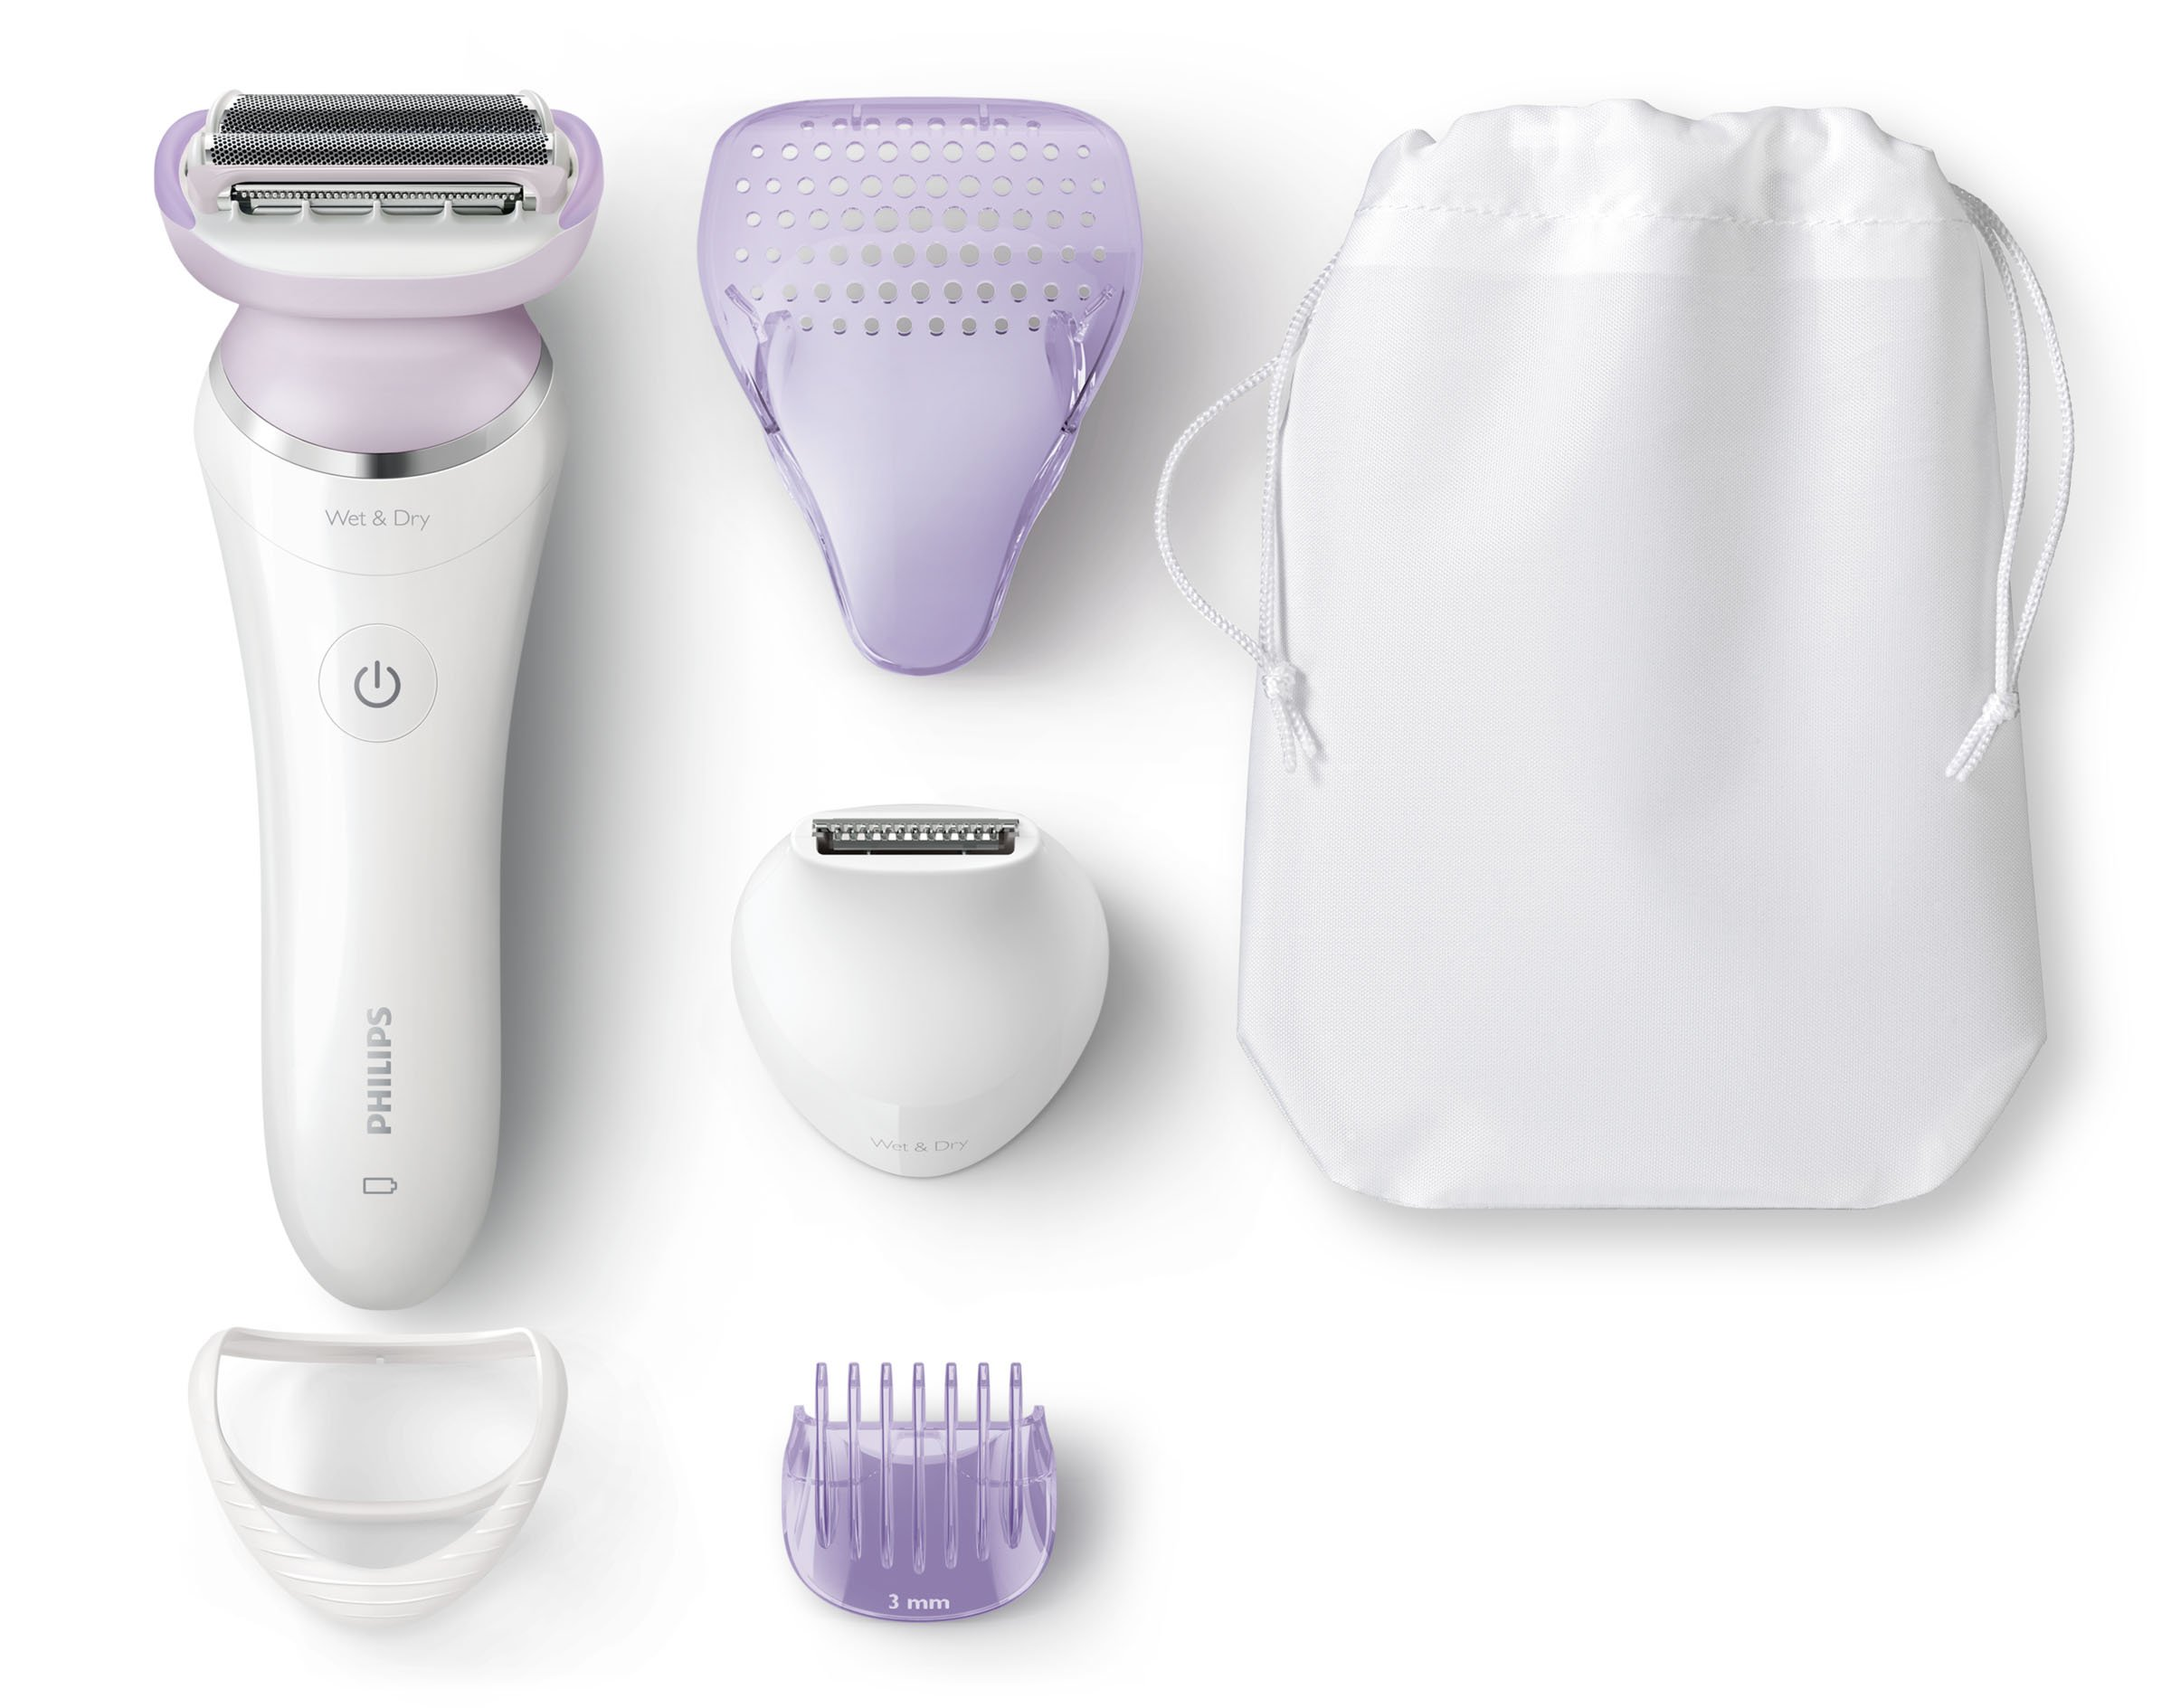 Philips SatinShave Prestige Wet and Dry electric shaver - women's shavers (Li-ion, White)